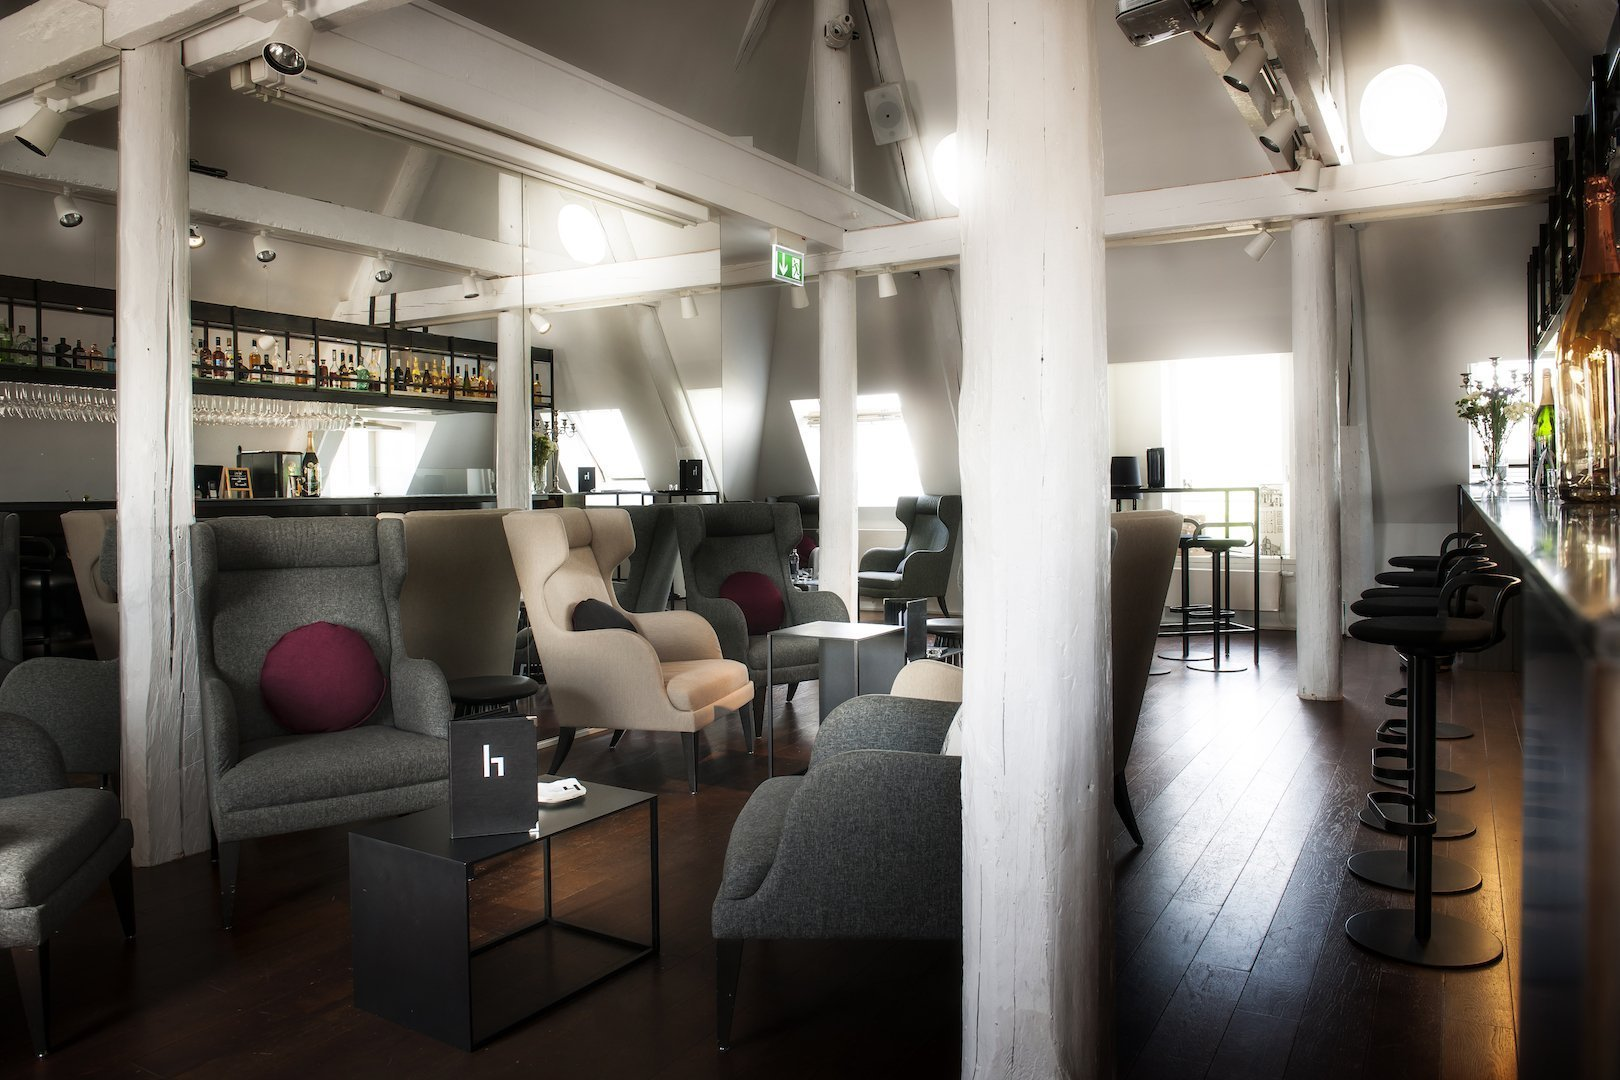 House 17 Private Members Club | The Attic